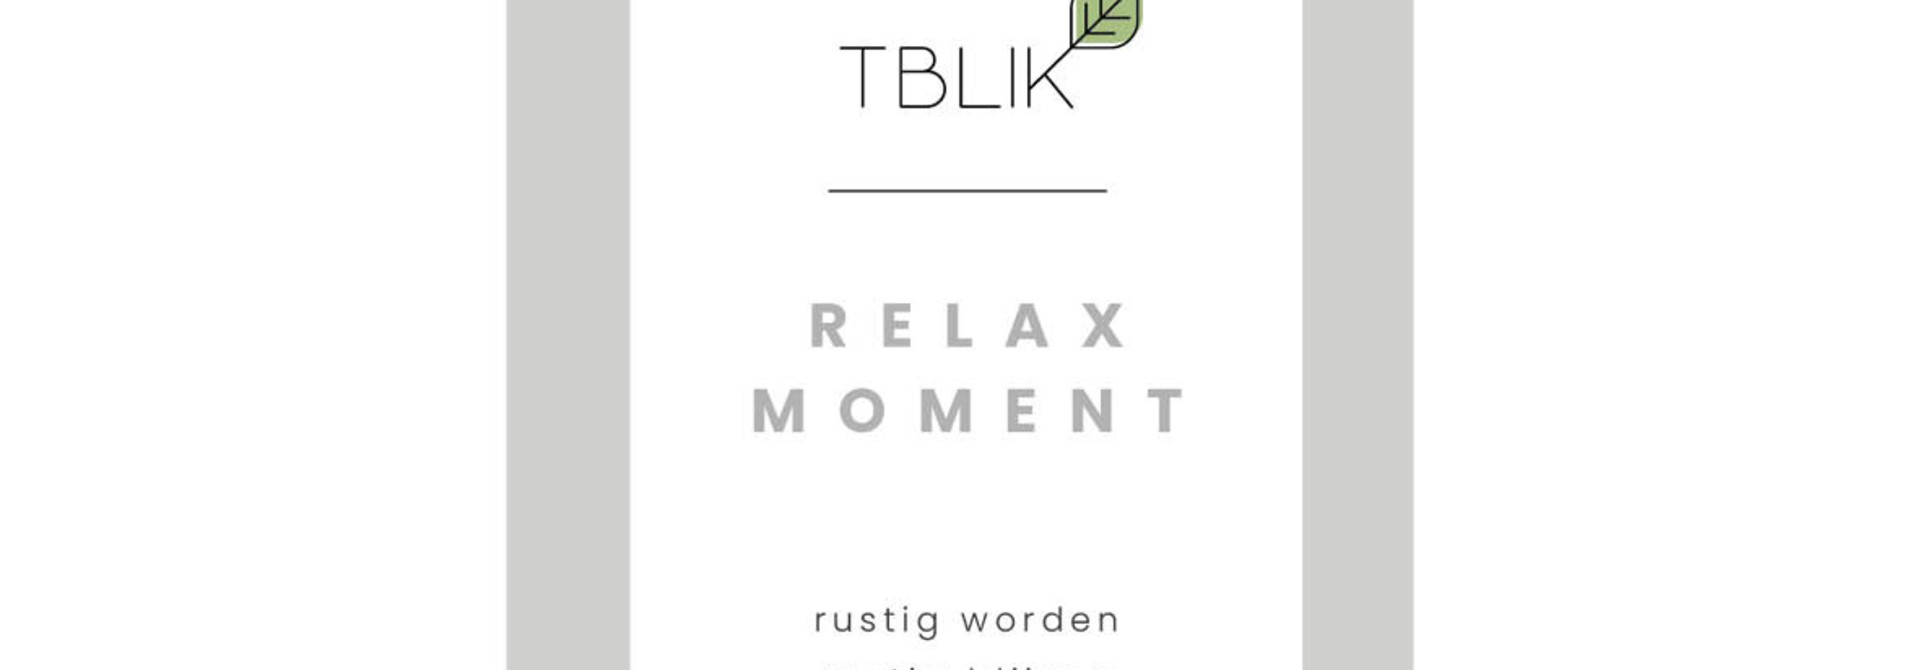 Relax moment